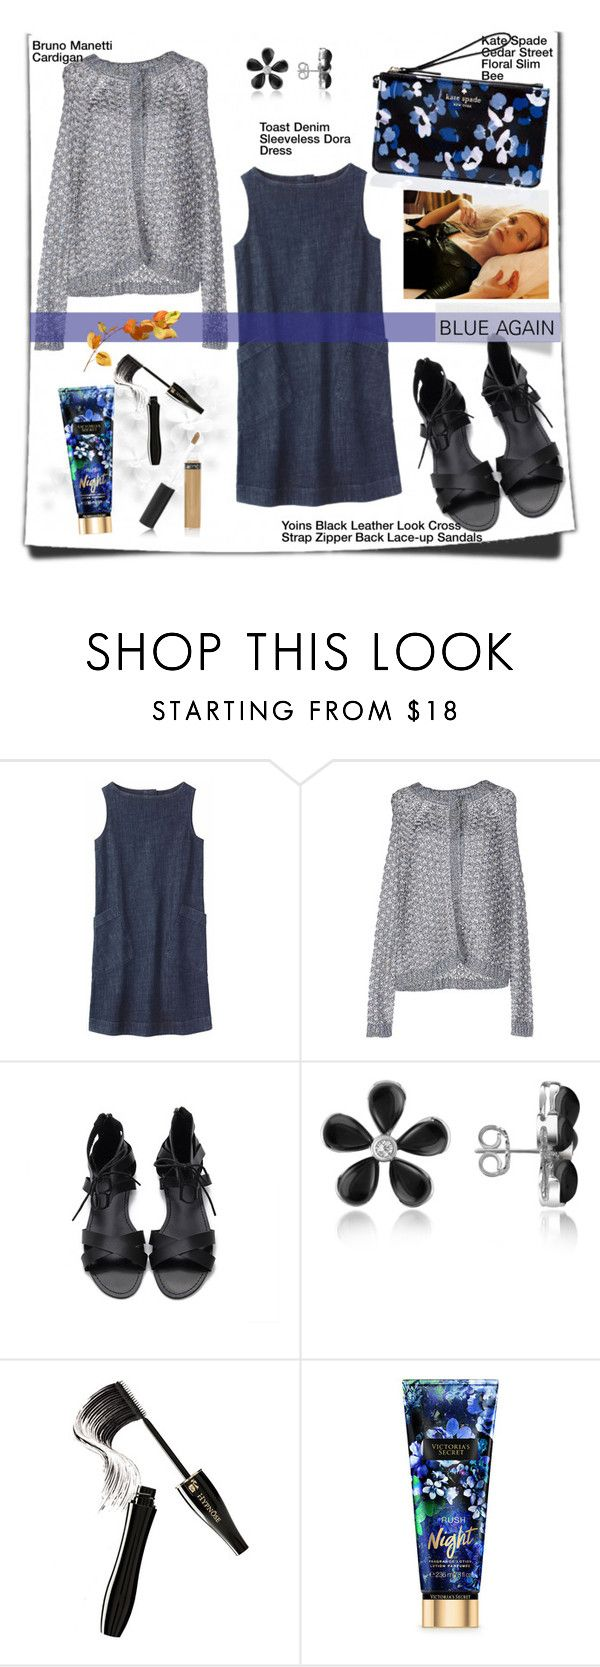 """2016-09-24"" by wilady ❤ liked on Polyvore featuring Toast, Bruno Manetti, Del Gatto, Lancôme and Kate Spade"